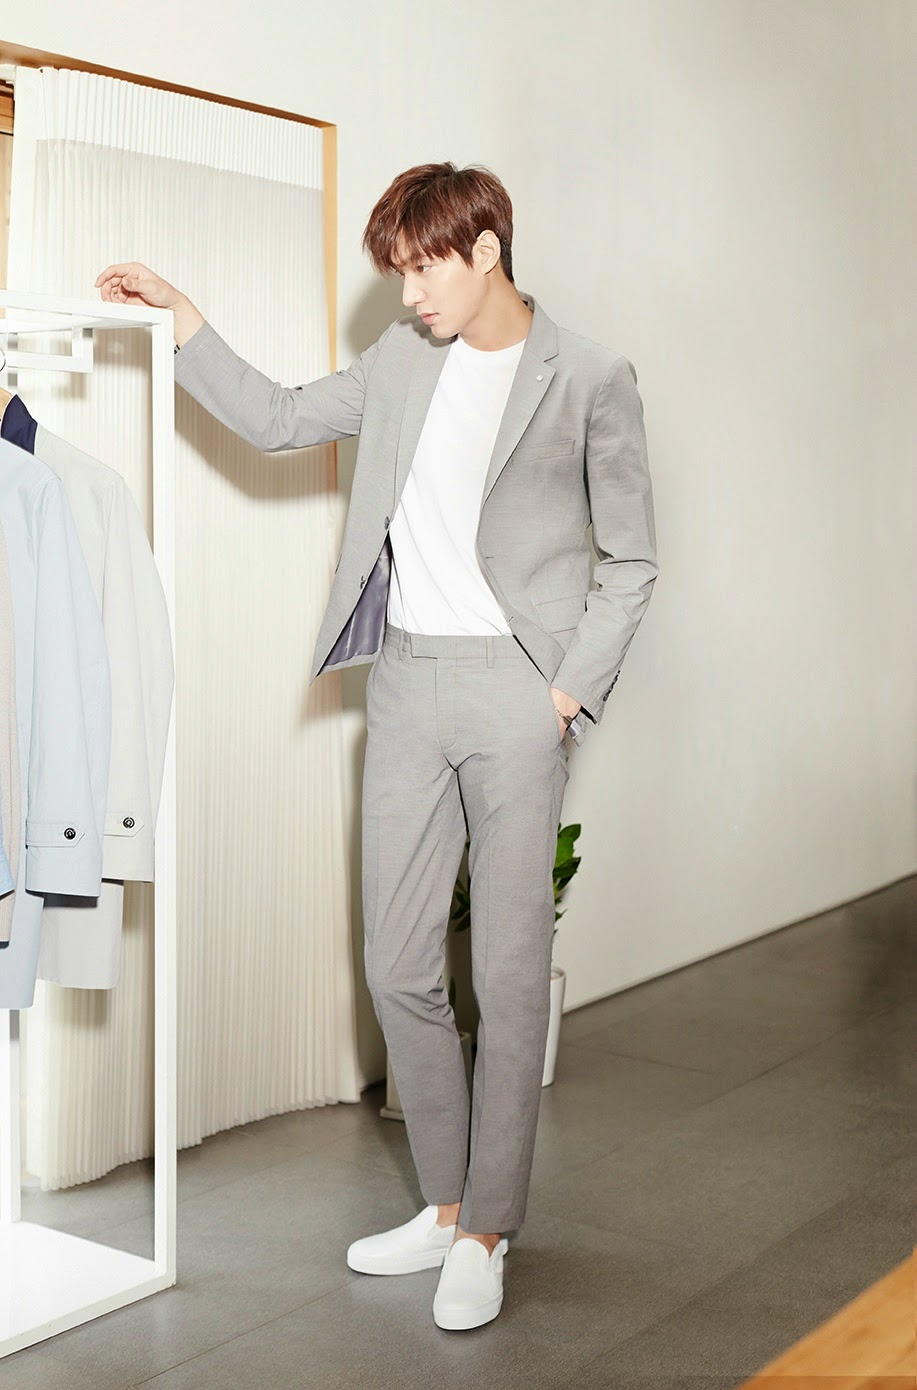 The Imaginary World Of Monika Lee Min Ho For Tngt Office Fashion